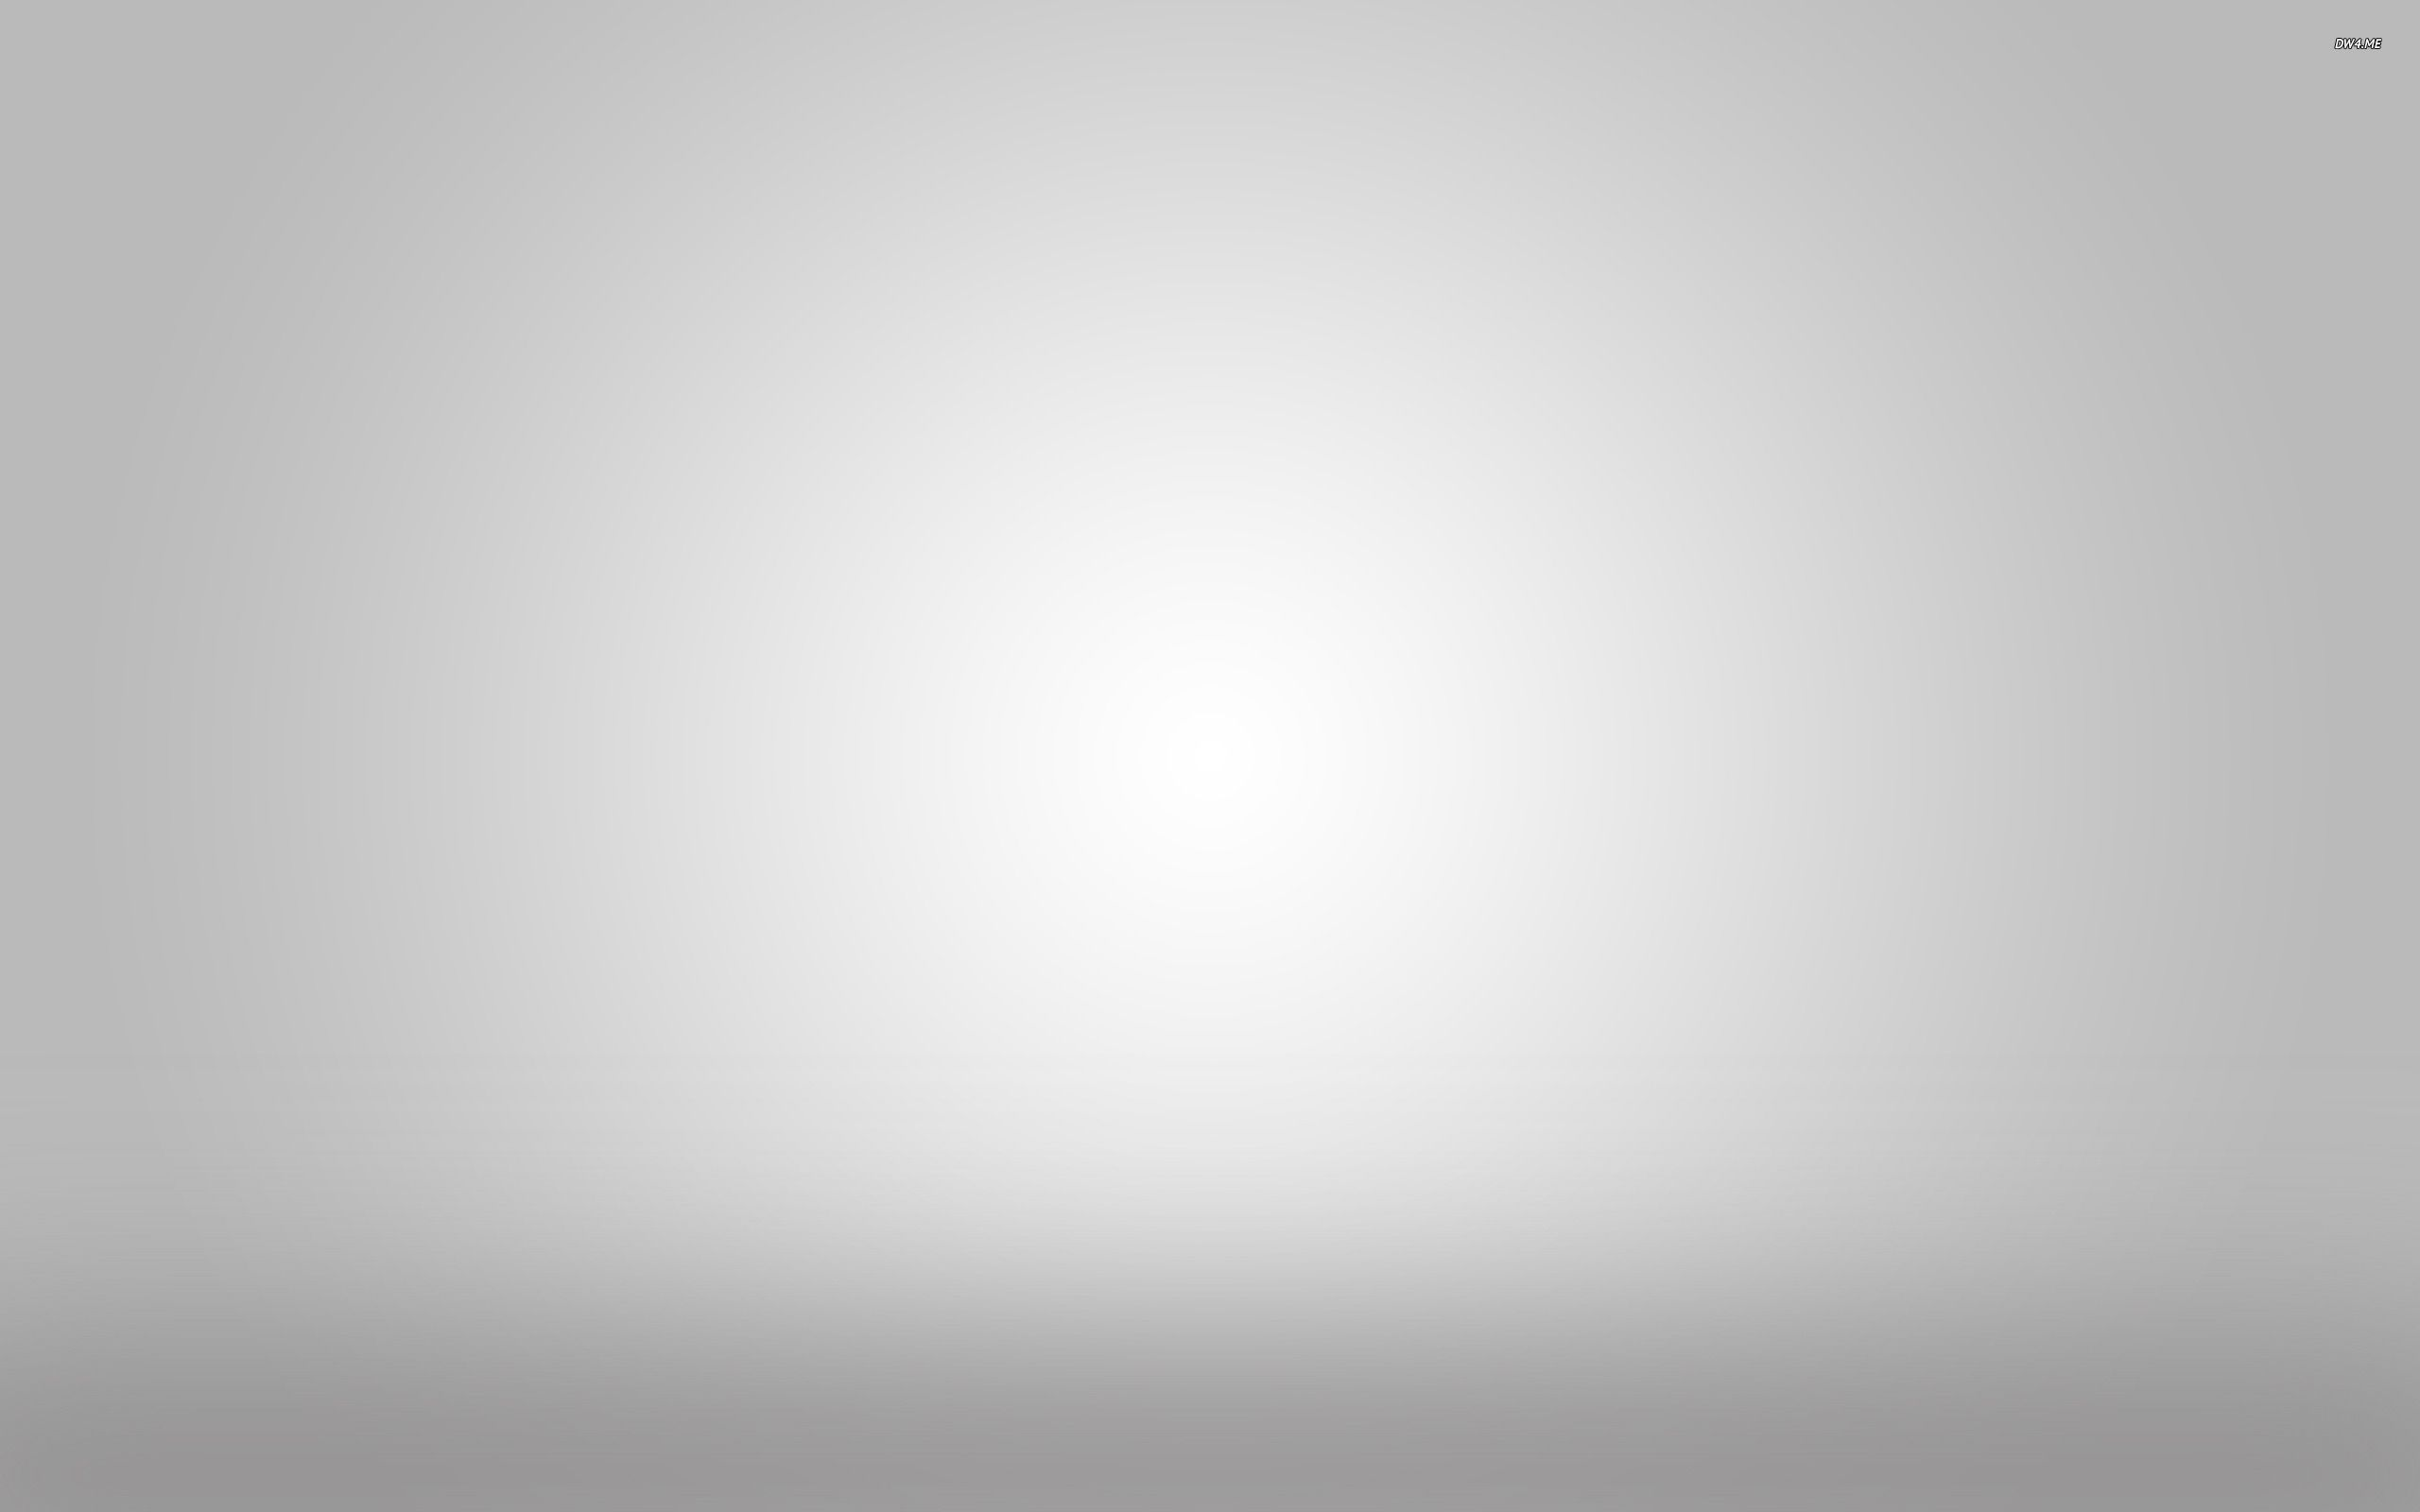 2560x1600 RMD: 768 HD Gray Wallpapers - descargar en digitalimagemakerworld.com